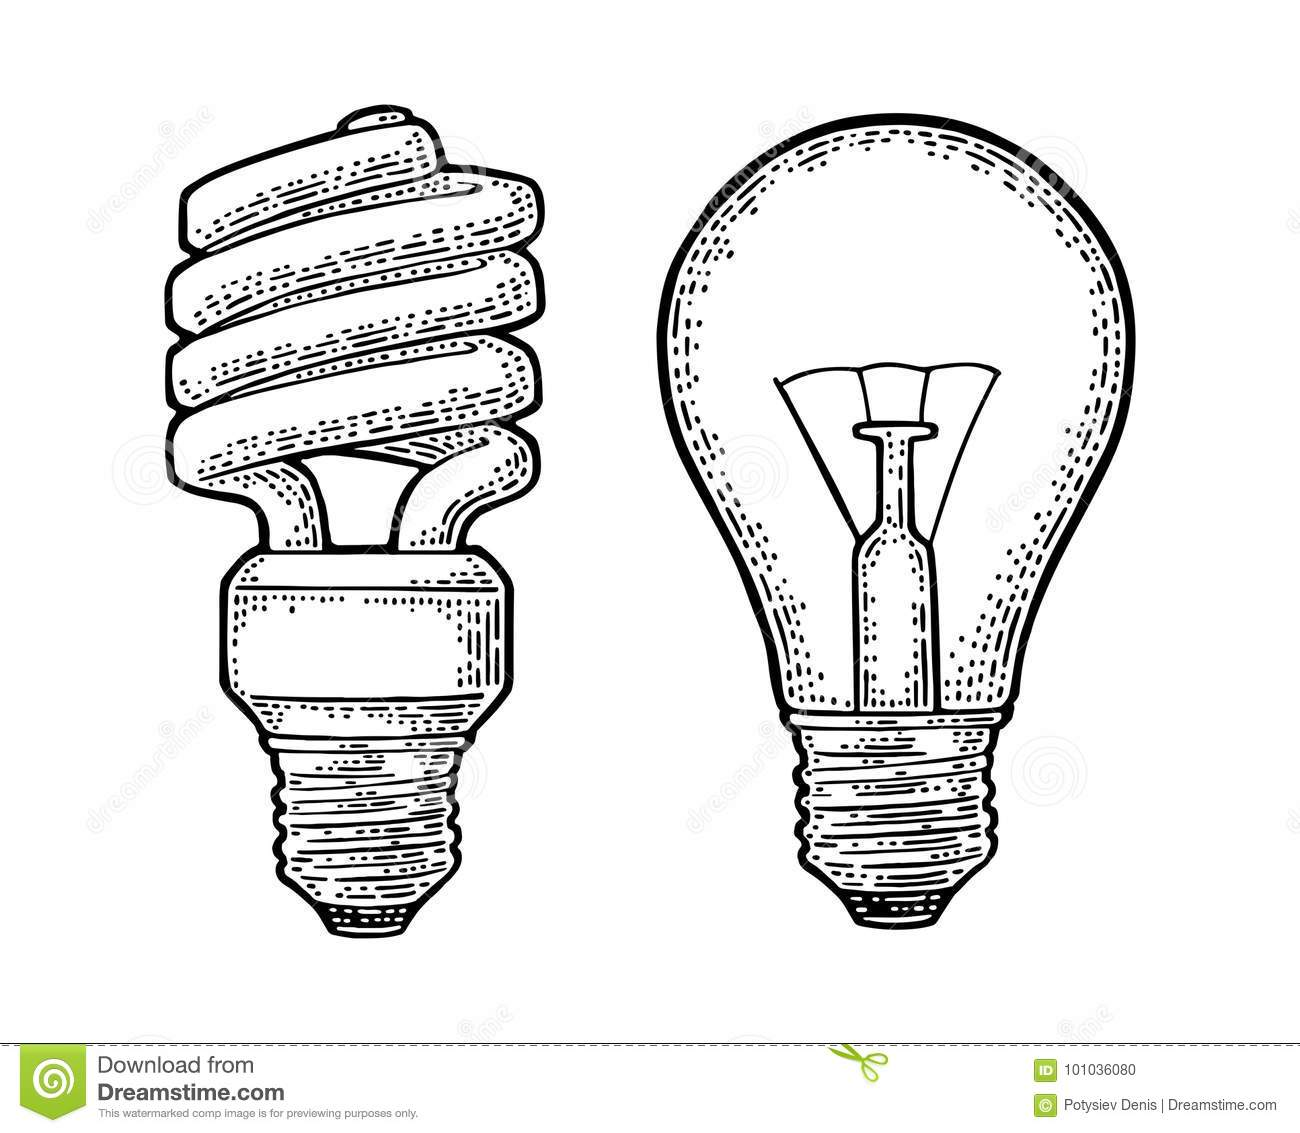 Energy saving spiral lamp and glowing light incandescent bulb. Engraving